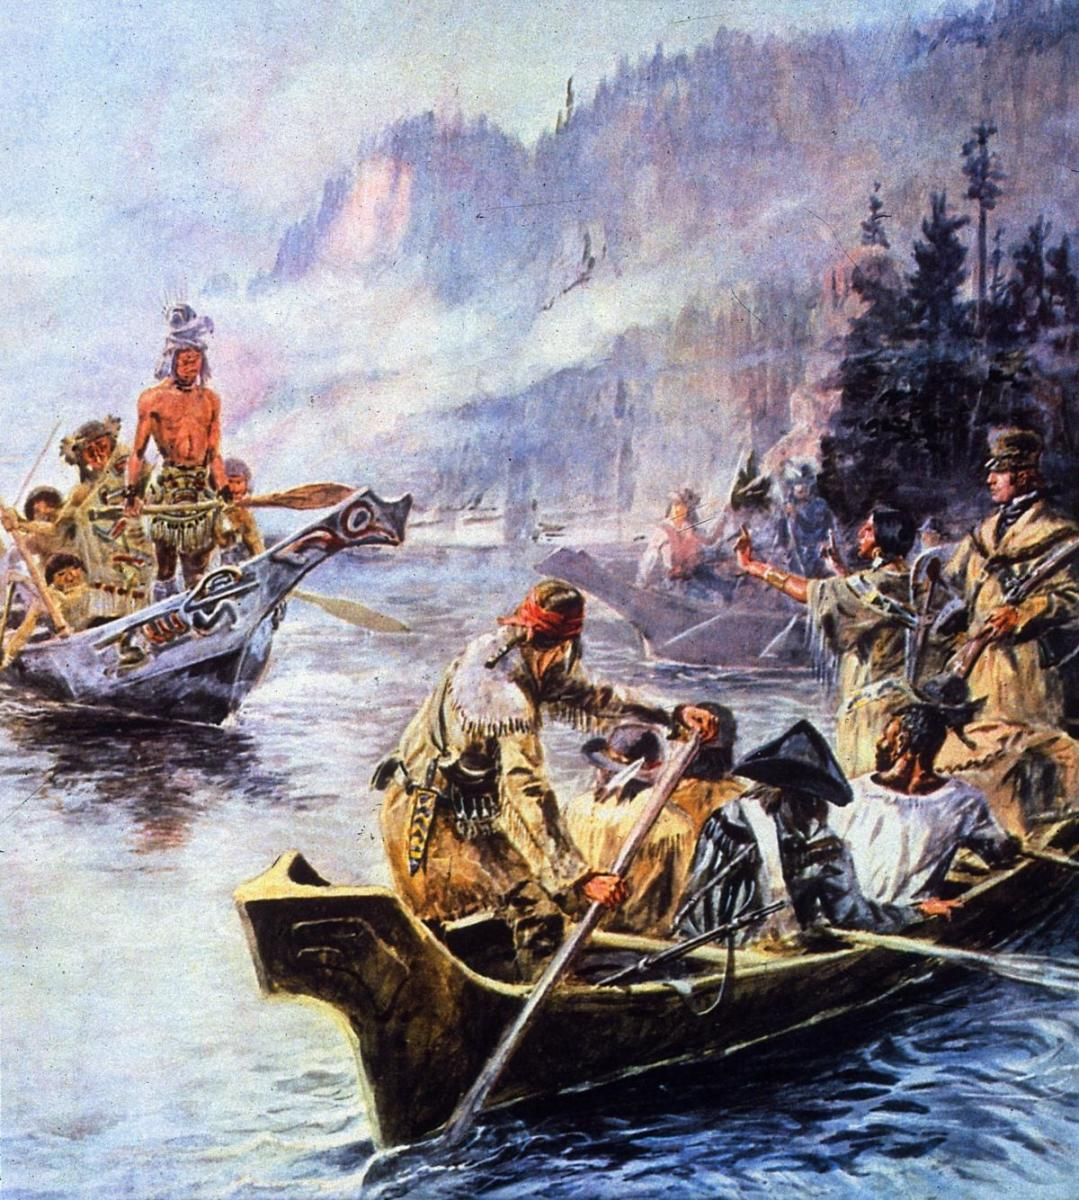 Sacajawea interpreting Lewis and Clark's intentions to the Chinook Indians. (Credit: MPI/Getty Images)